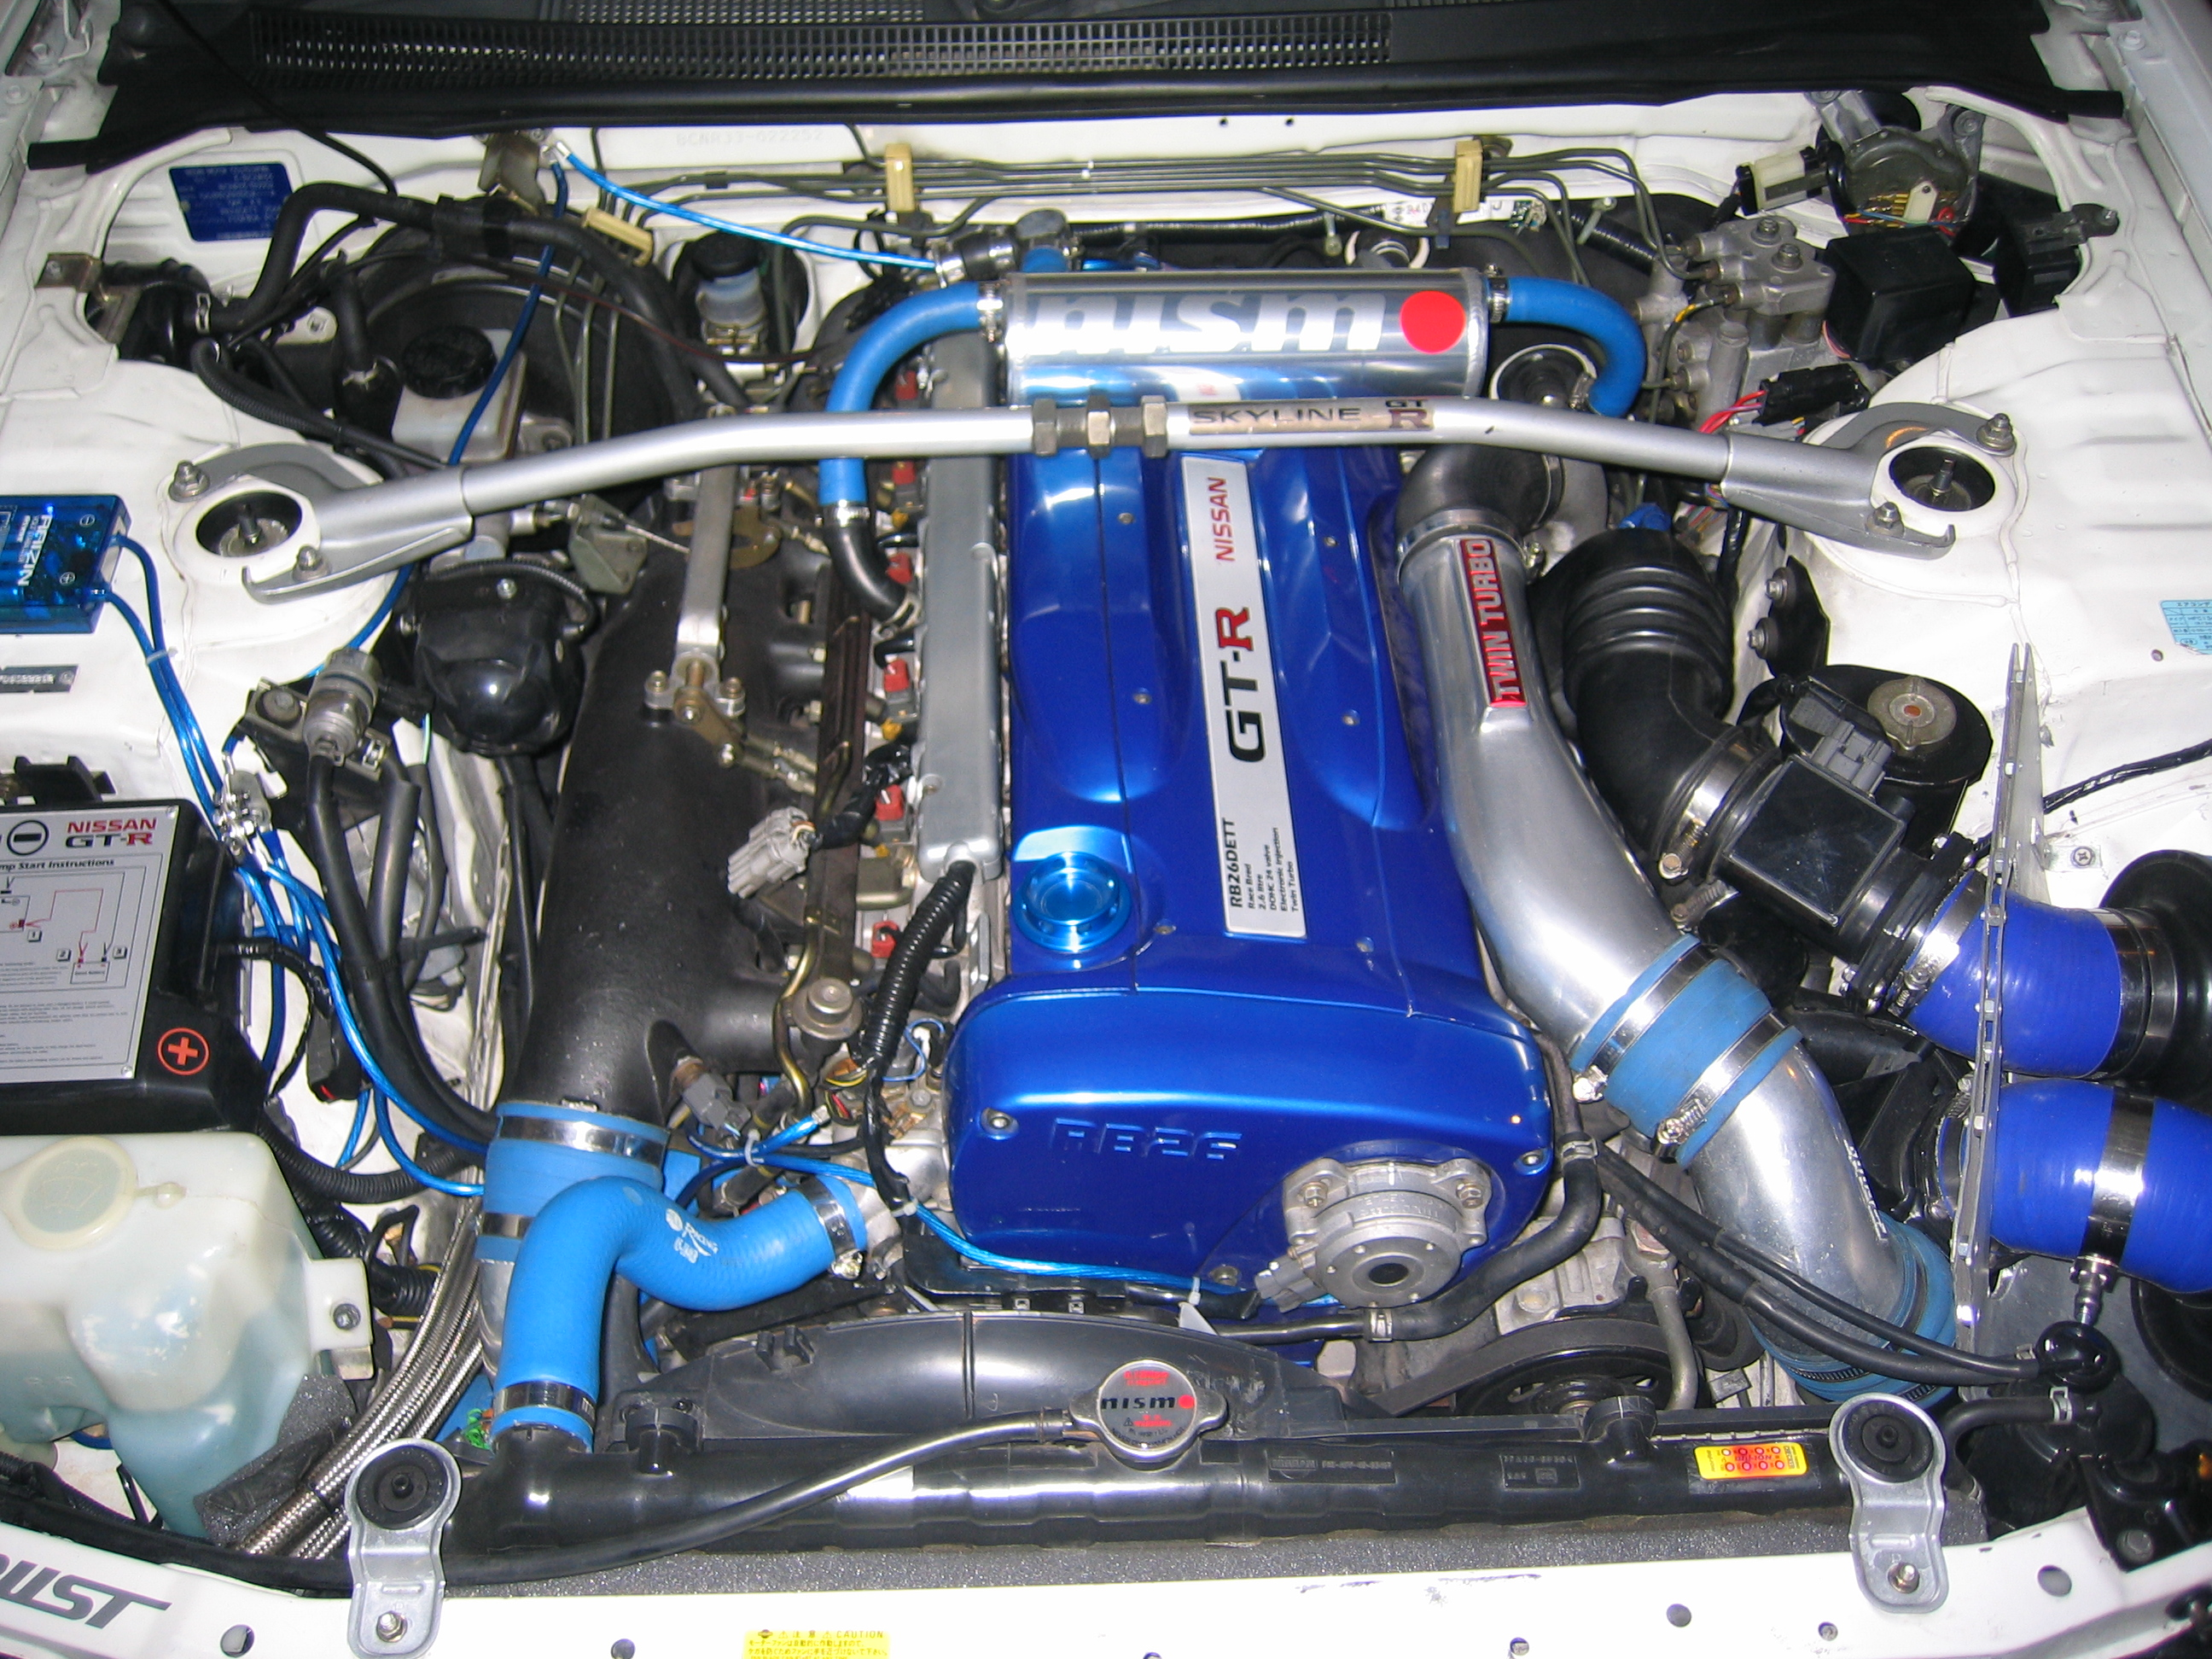 file r33-gtr-engine jpg